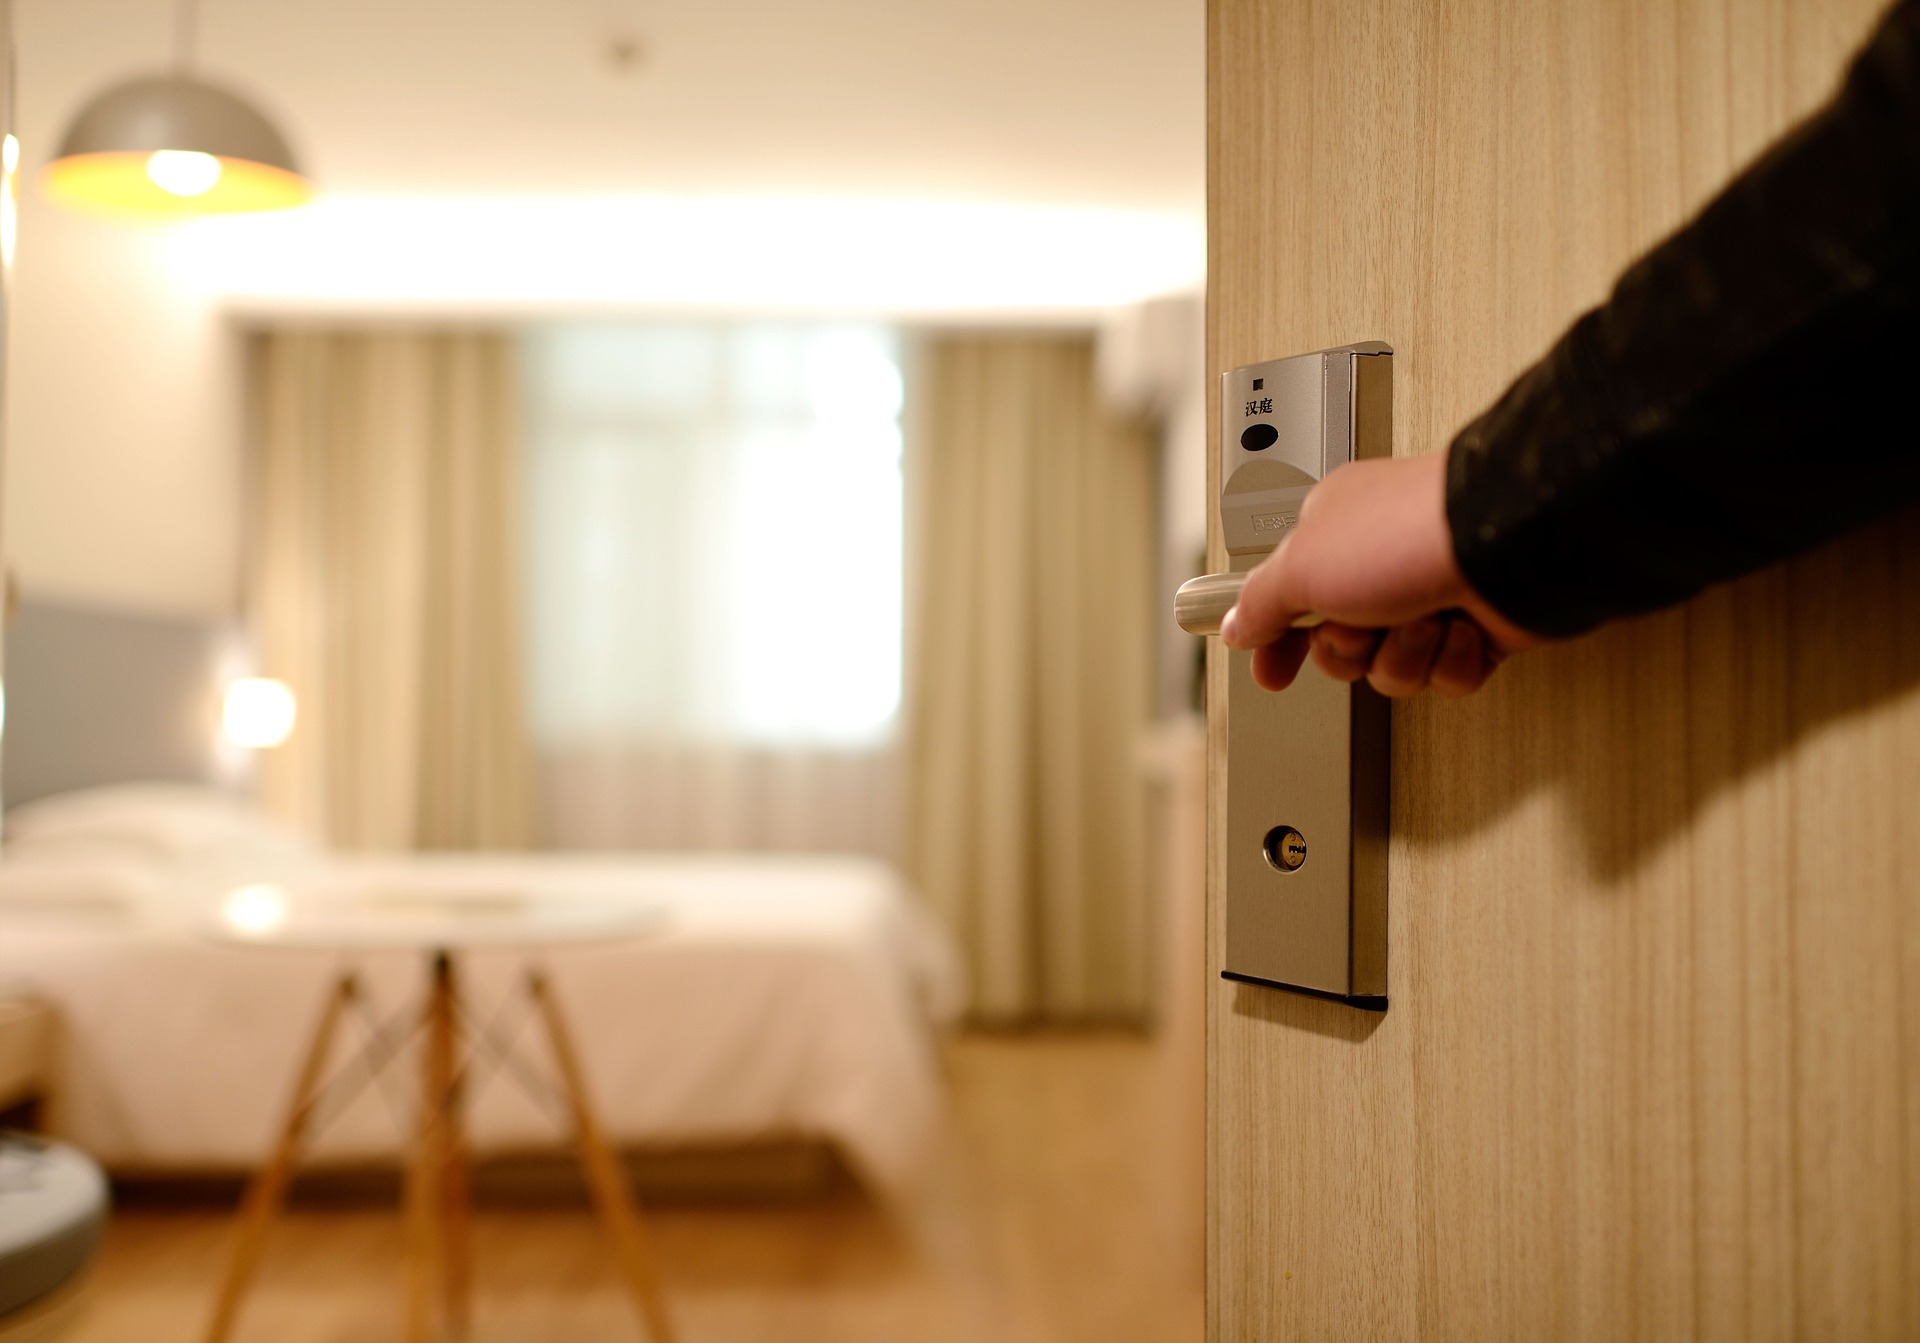 Our hotels in Switzerland are still open for you - Due to the current situation, the federal government has created standardised protective regulations